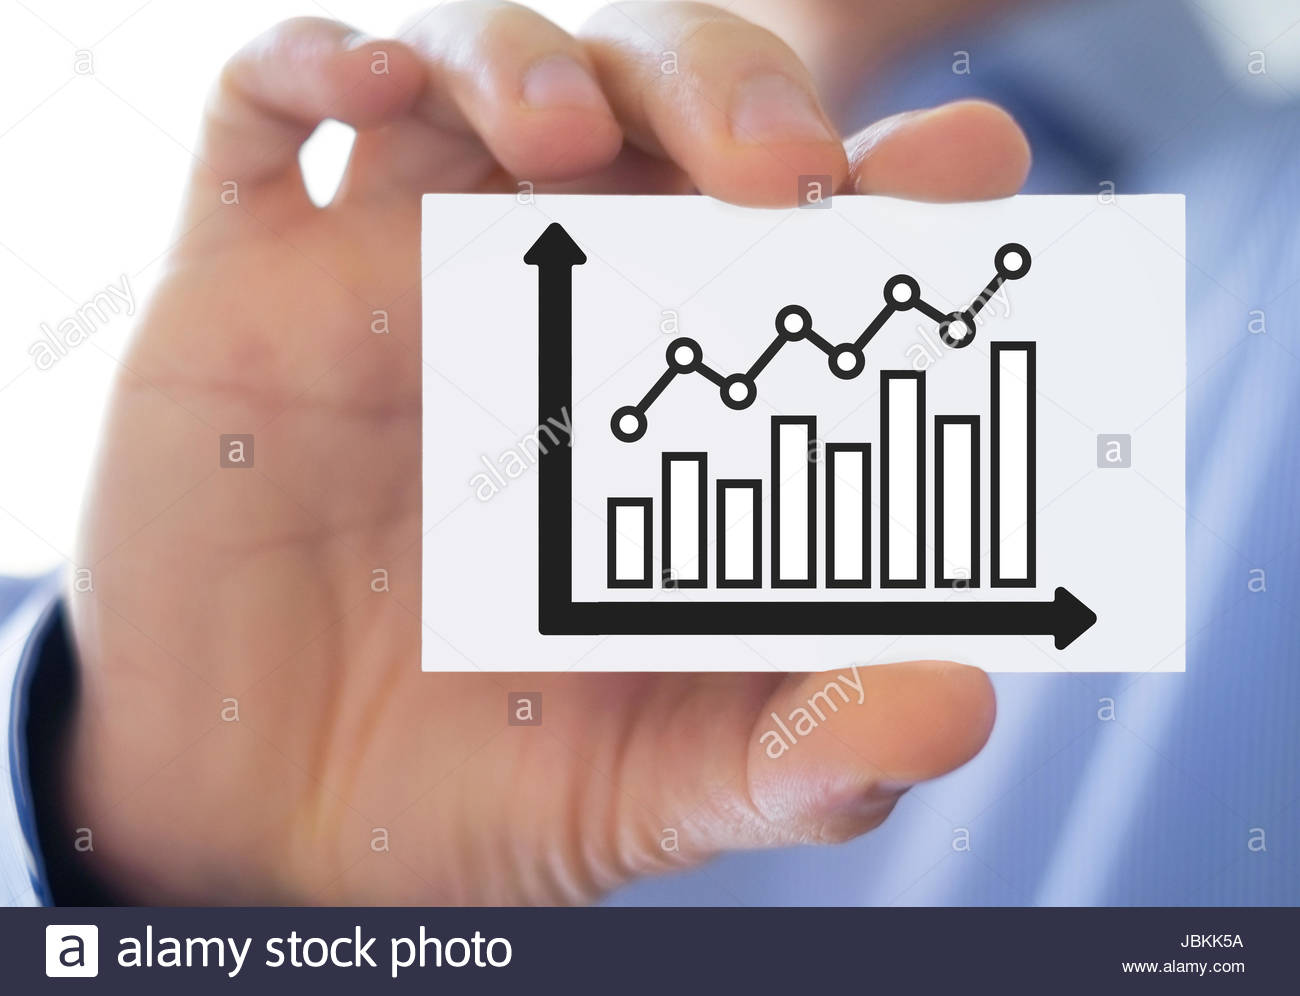 Development statistic graph chart - business card - Stock Image